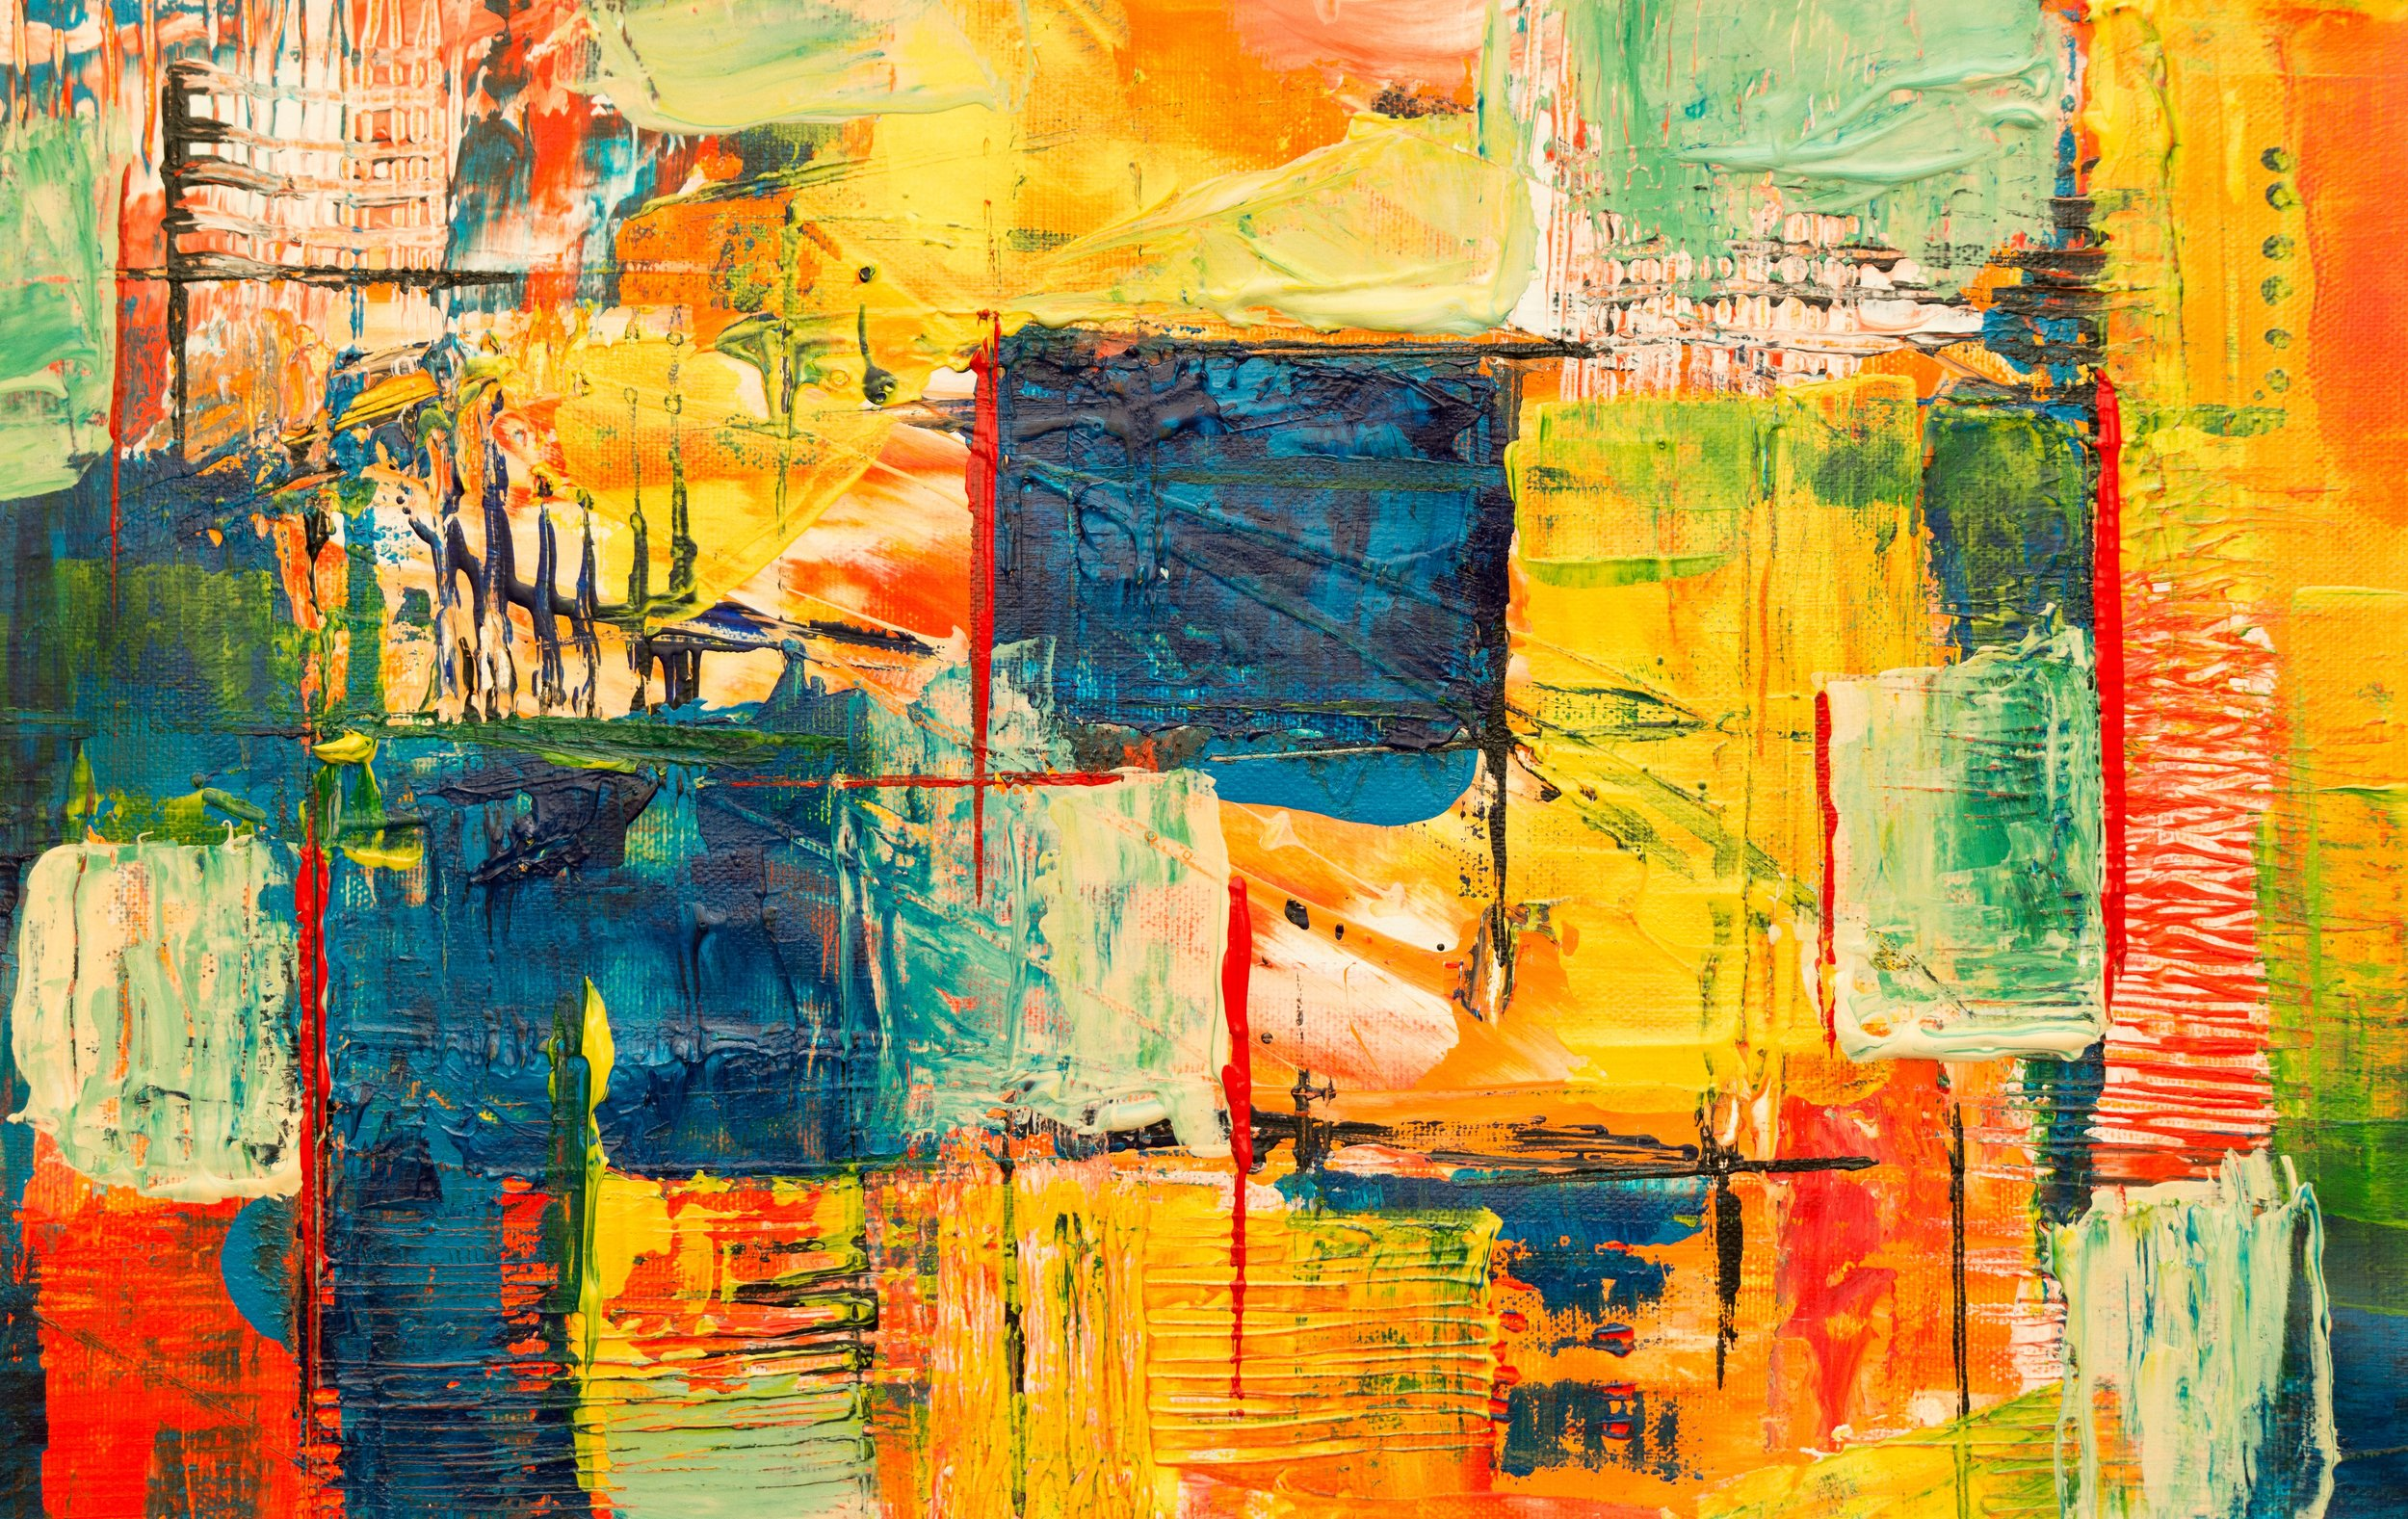 4k-wallpaper-abstract-abstract-expressionism-1269968.jpg